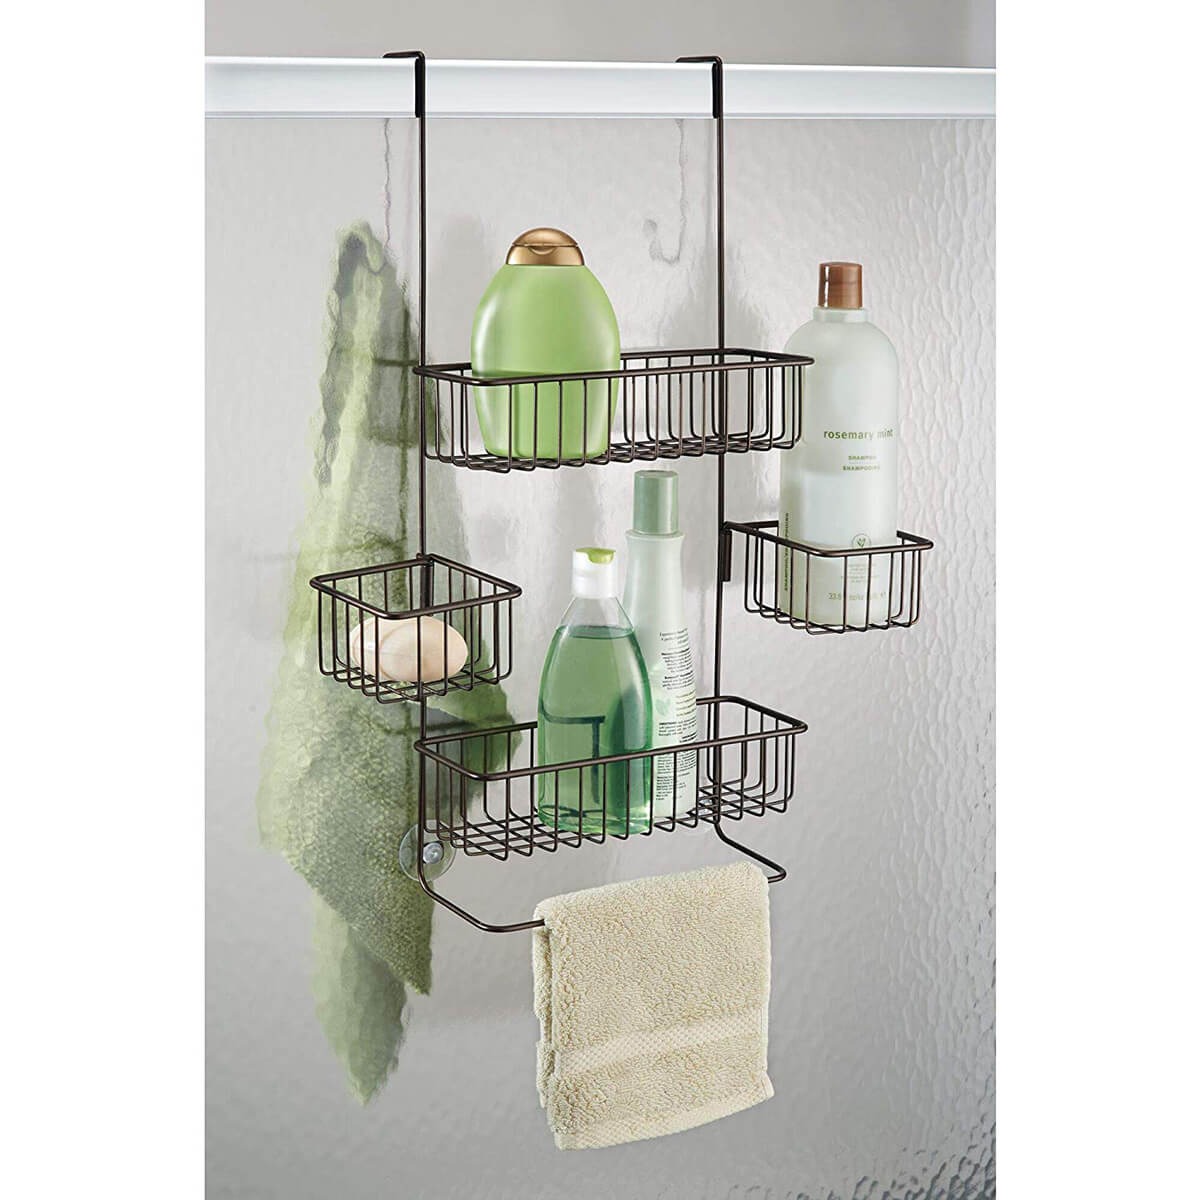 Over-the-Door Multi-Basket Caddy